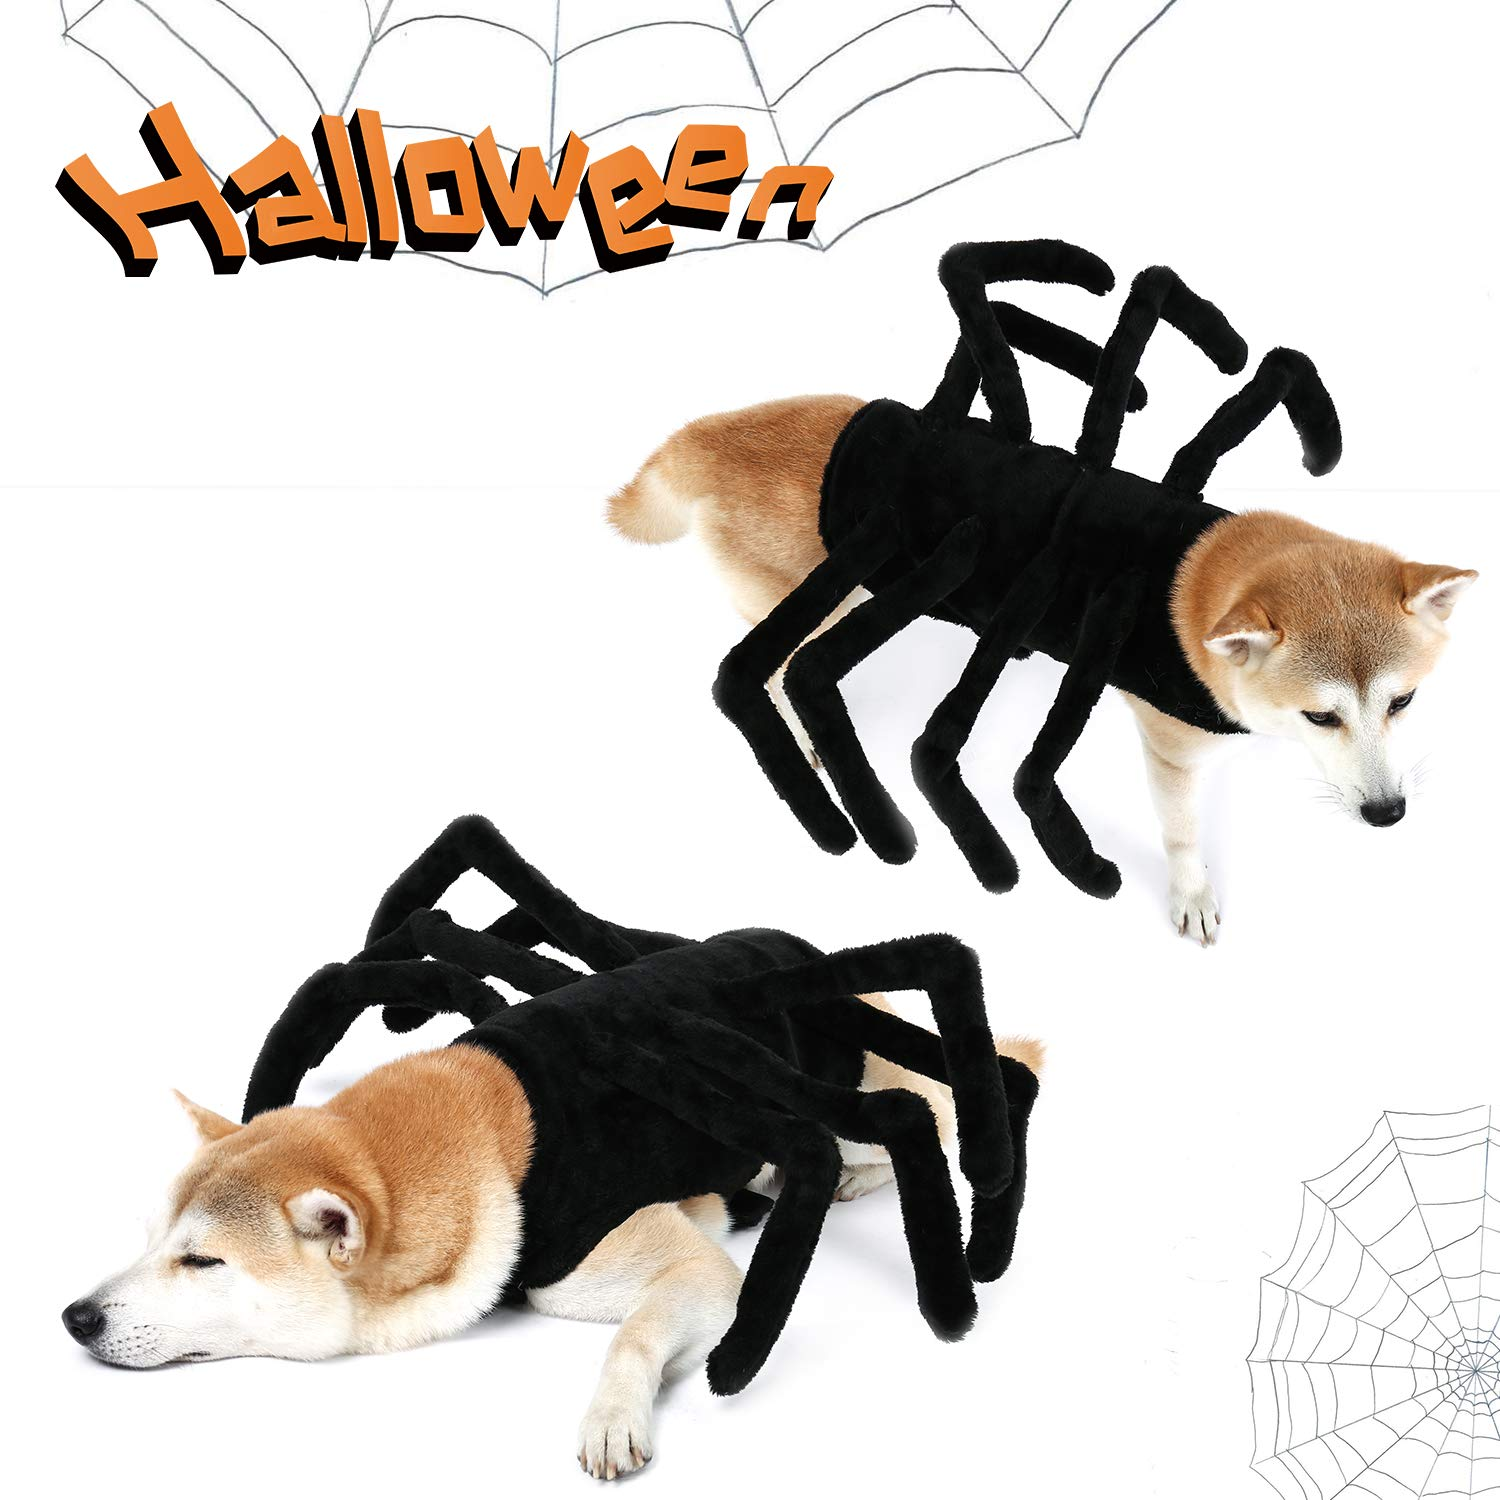 PAWZ Road Dog Spider Costume Halloween Pet Costumes with Furry Spider Legs from Small to Large Size - Large by PAWZ Road